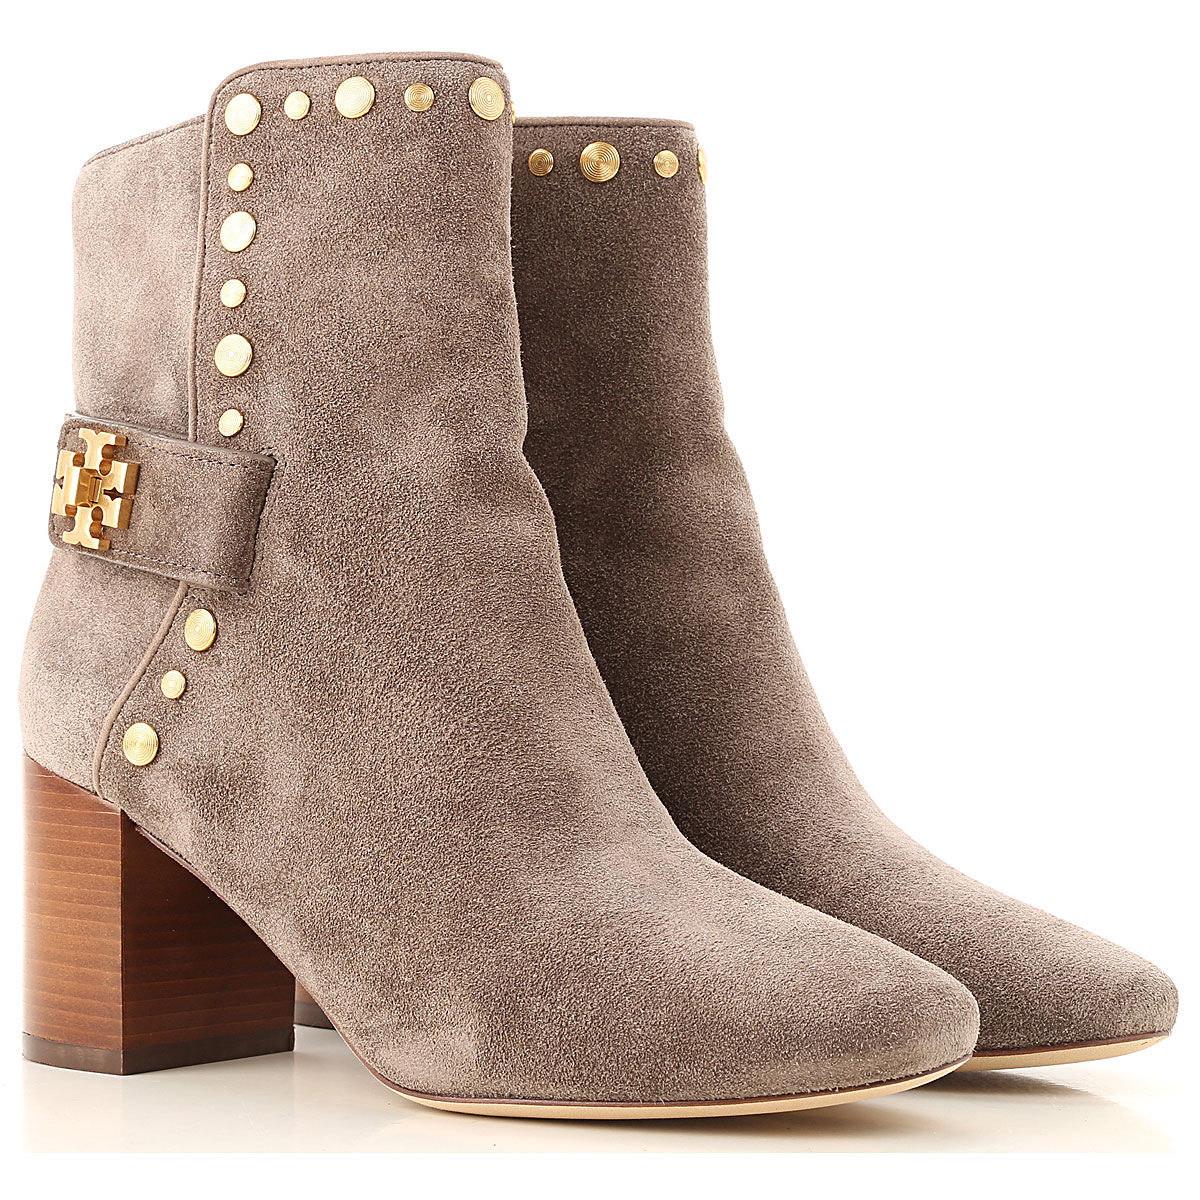 Tory Burch Boots for Women, Booties On Sale, Sand, Suede leather, 2019, 10 11 5 6 7 8.5 9